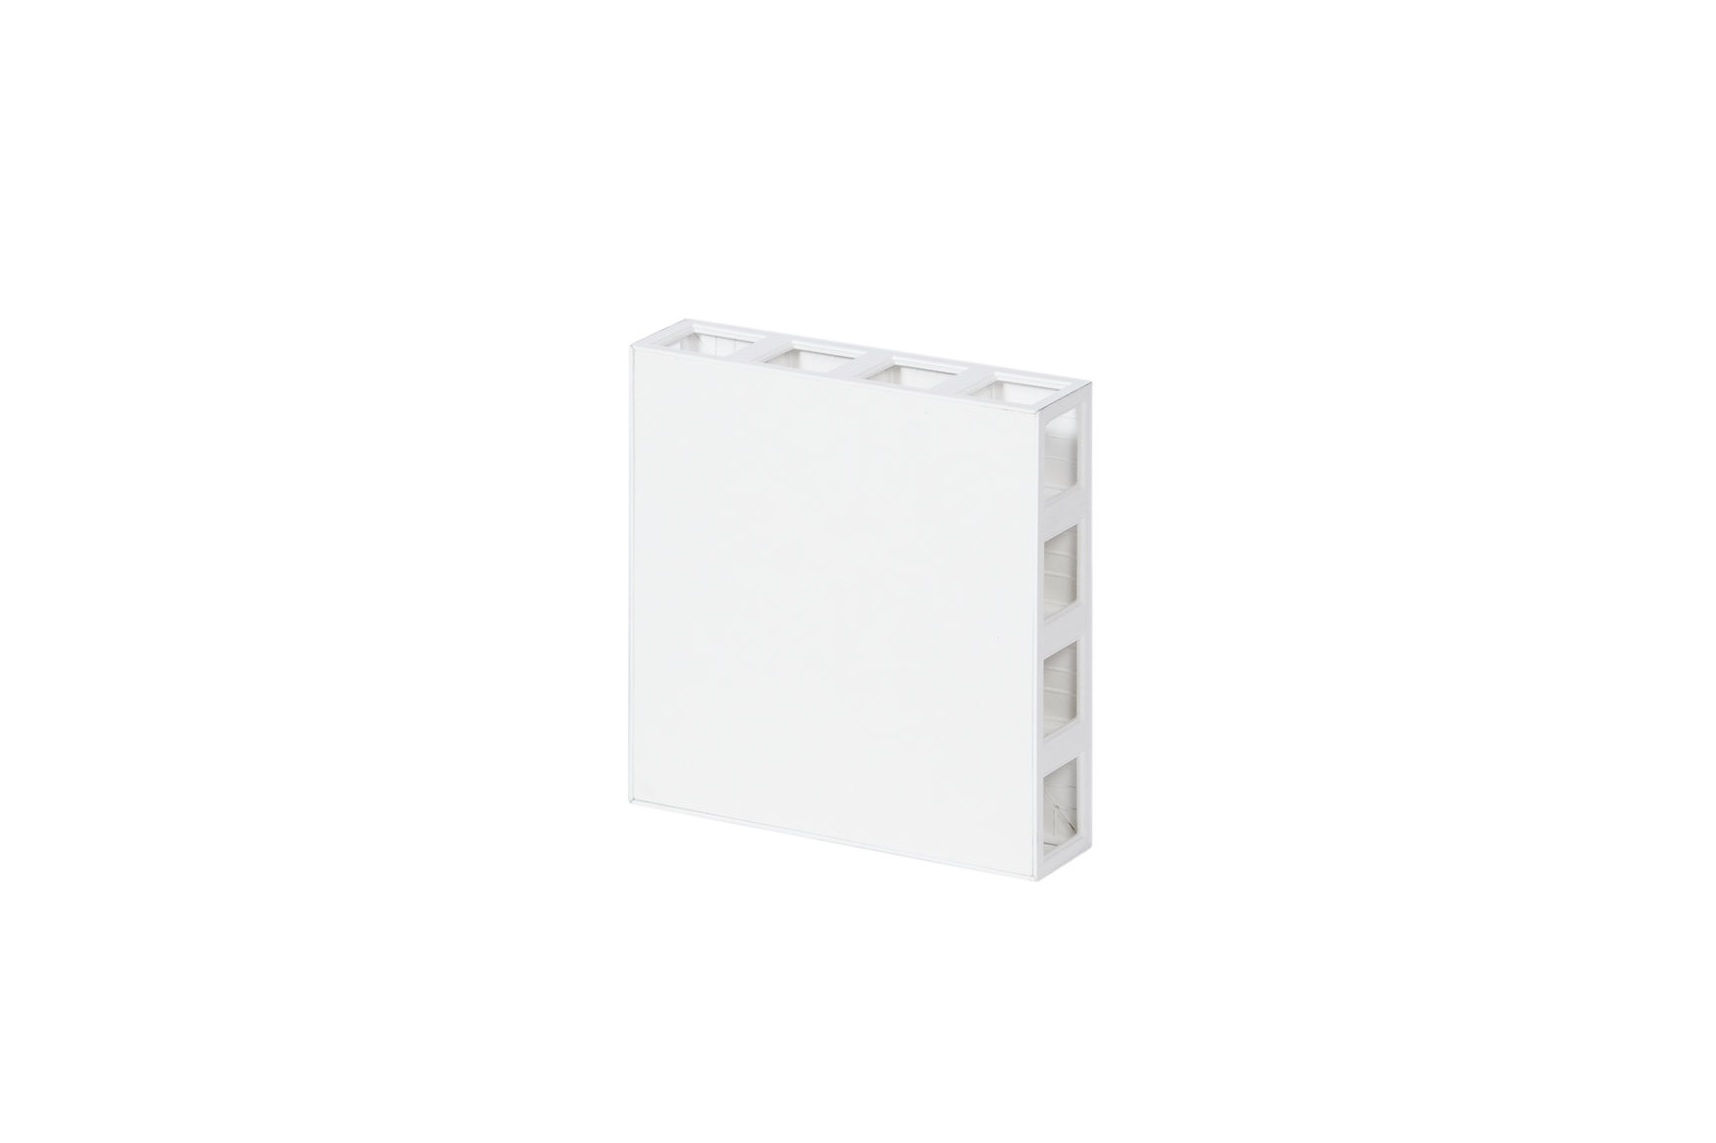 everpanel 1ft x 1ft wall panel